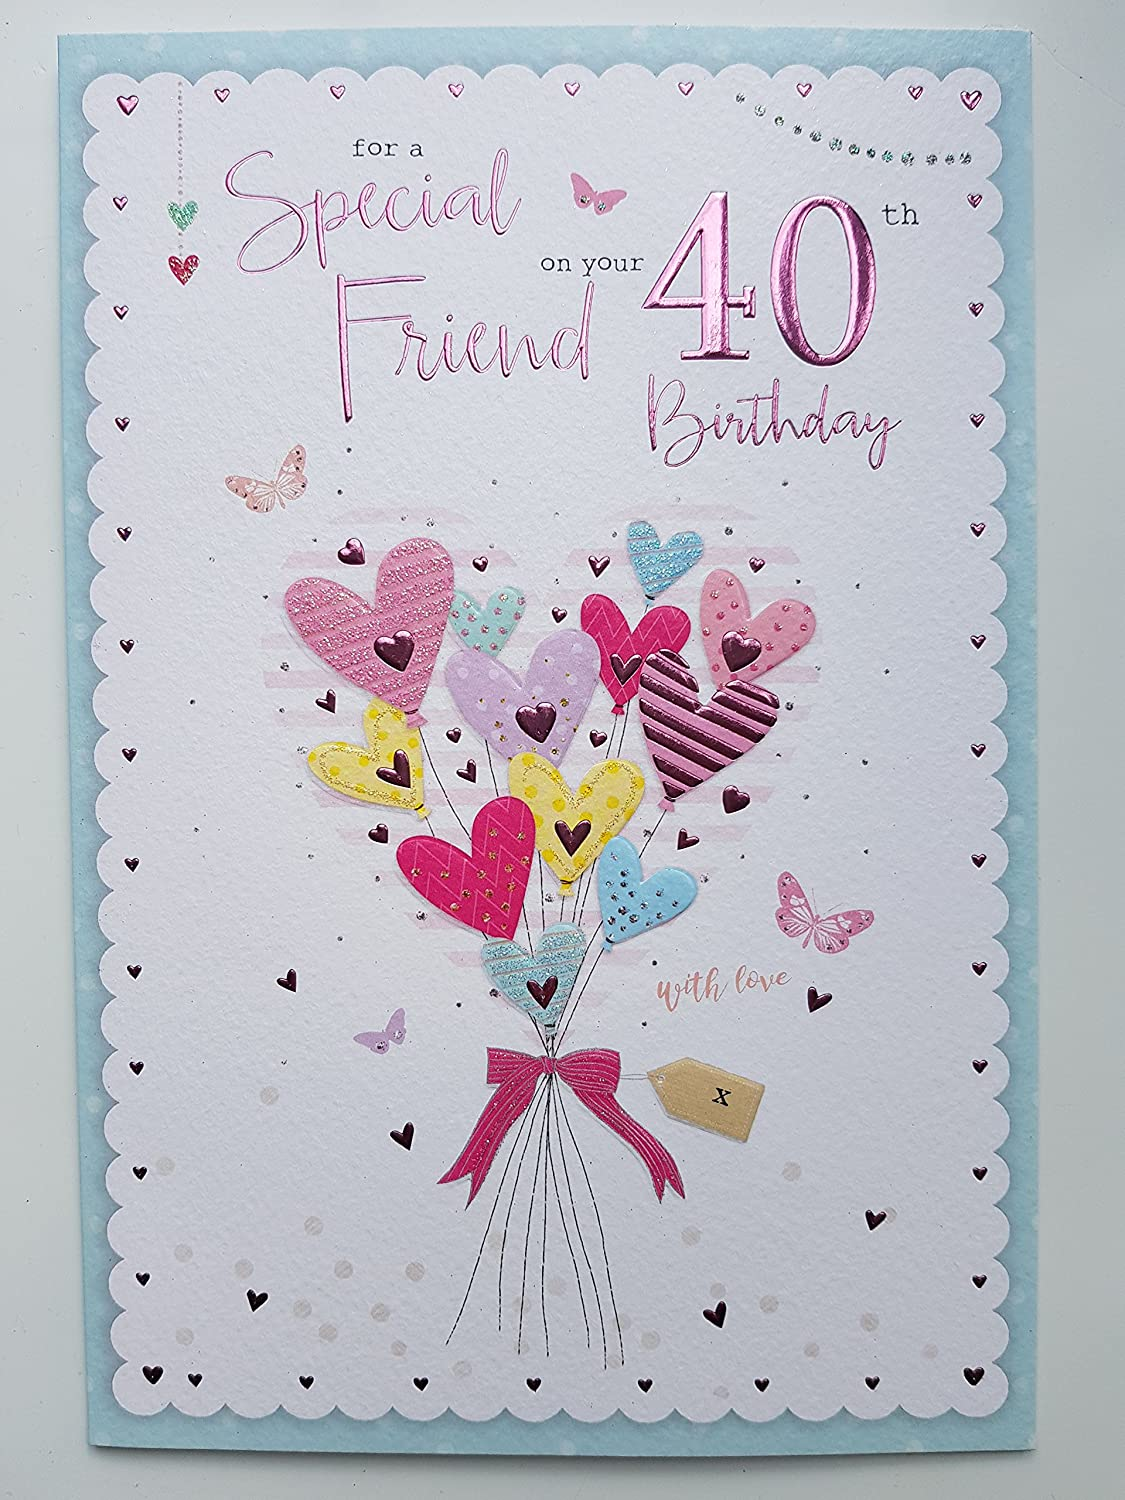 Wondrous Special Friend On Your 40Th Birthday Birthday Card Stylish Funny Birthday Cards Online Inifodamsfinfo